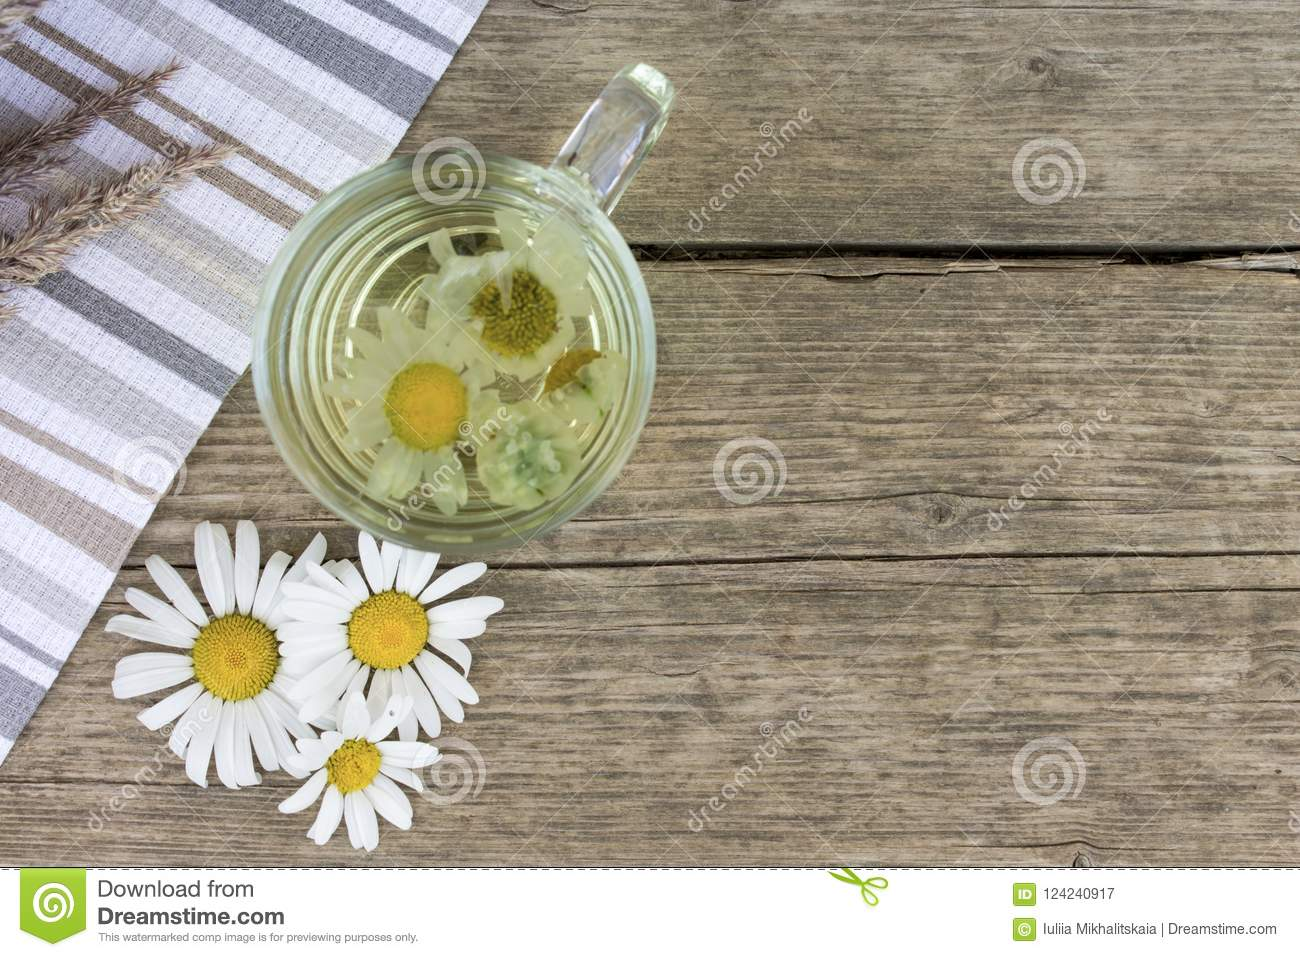 Clear transparent cup of camomile tea on vintage wooden background with dried herbs, daisy flowers and copy space.